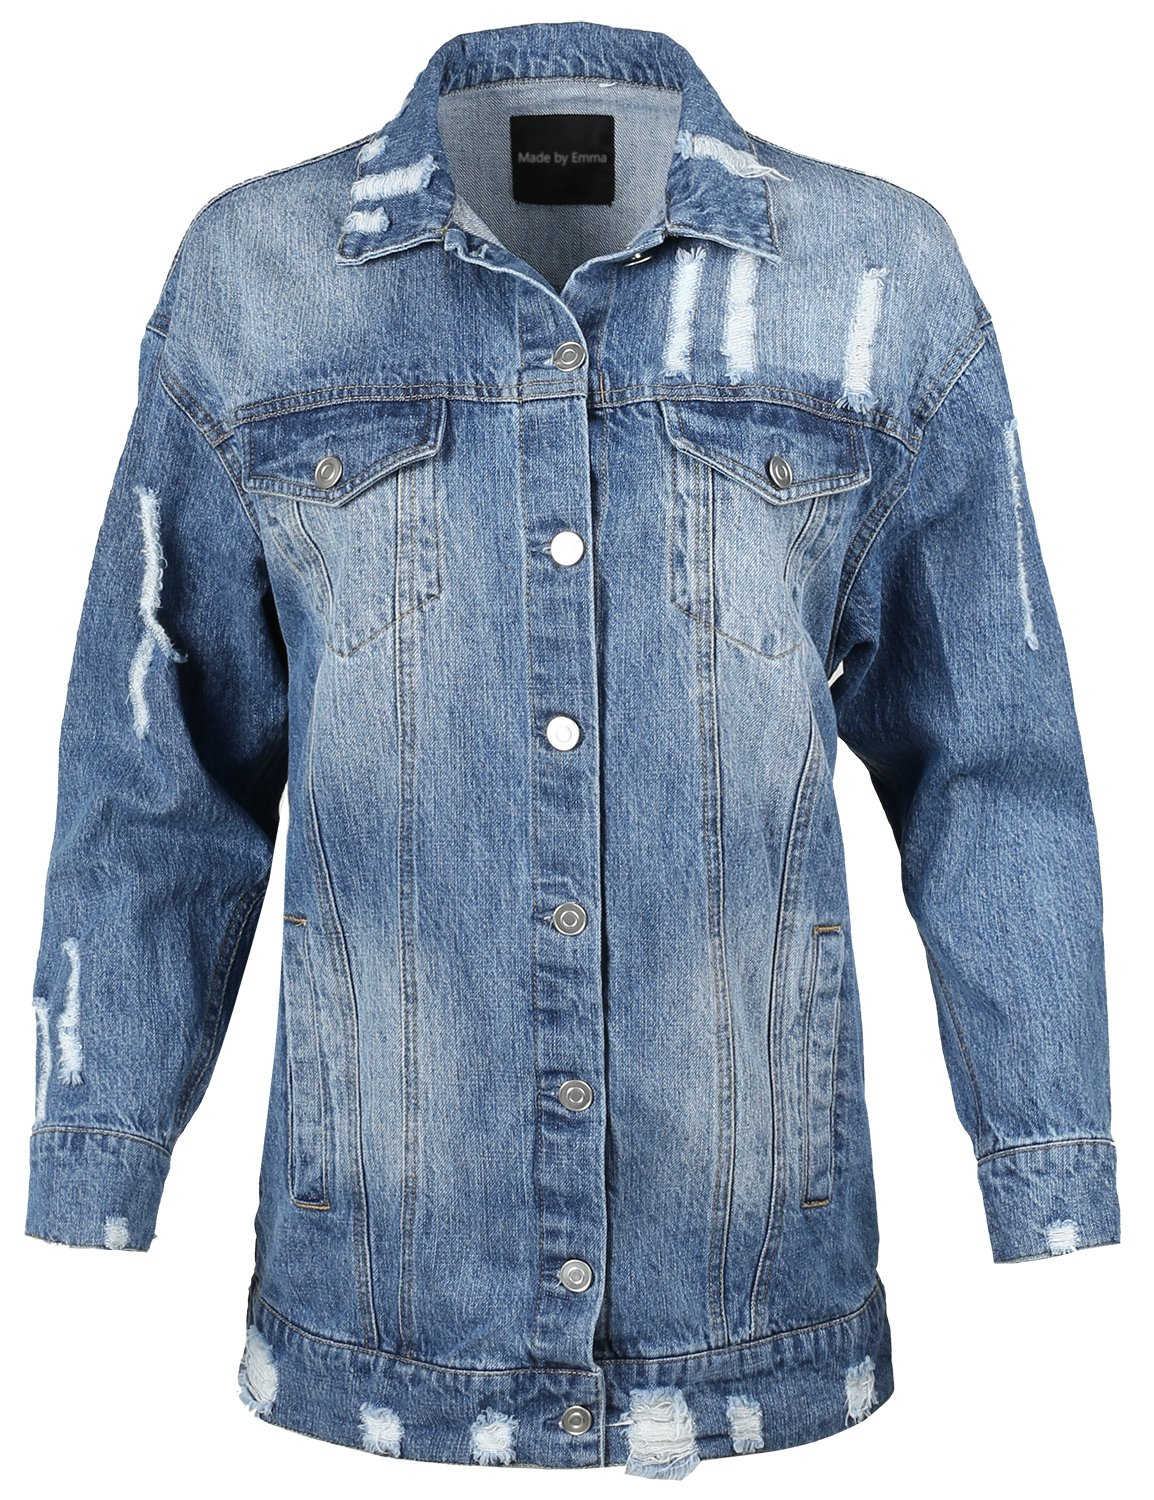 Made by Emma Over-sized Distressed Long Sleeve Denim Jacket Blue L